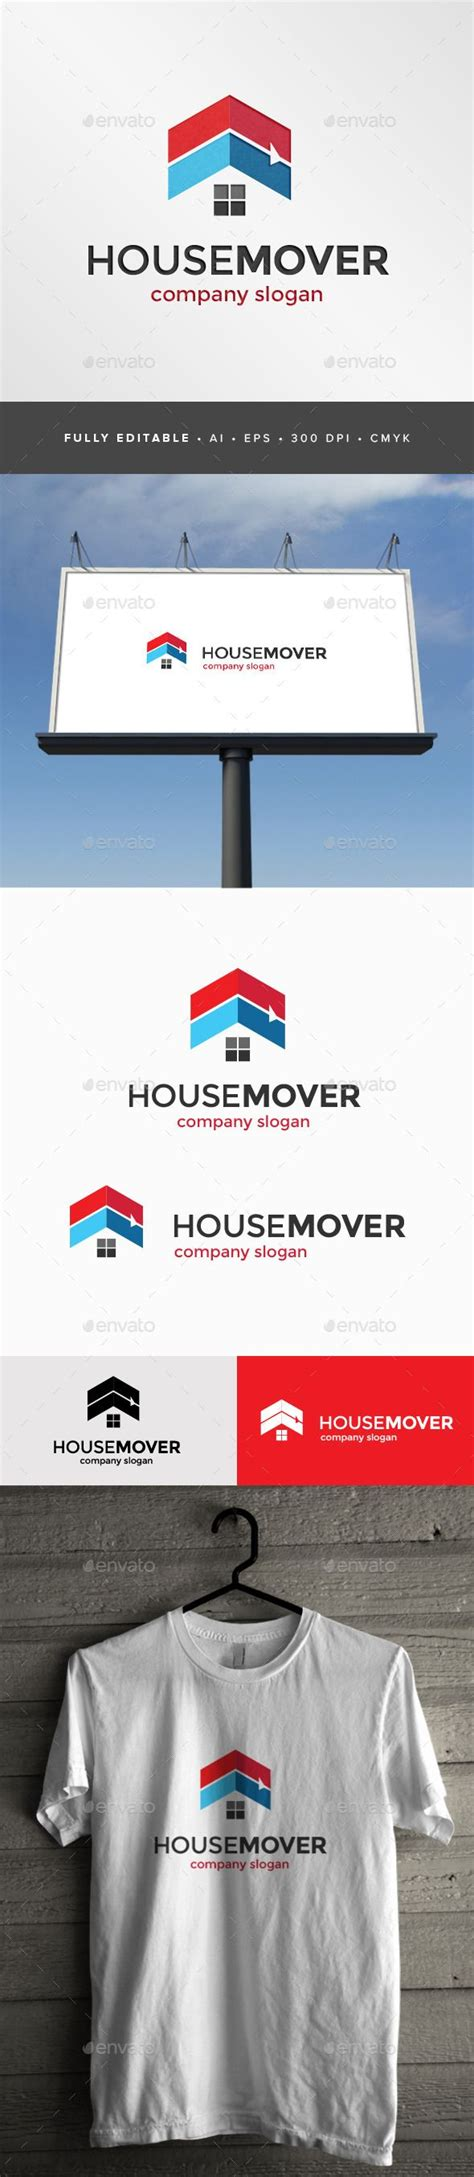 house movers dallas best 25 house movers ideas on pinterest apartment